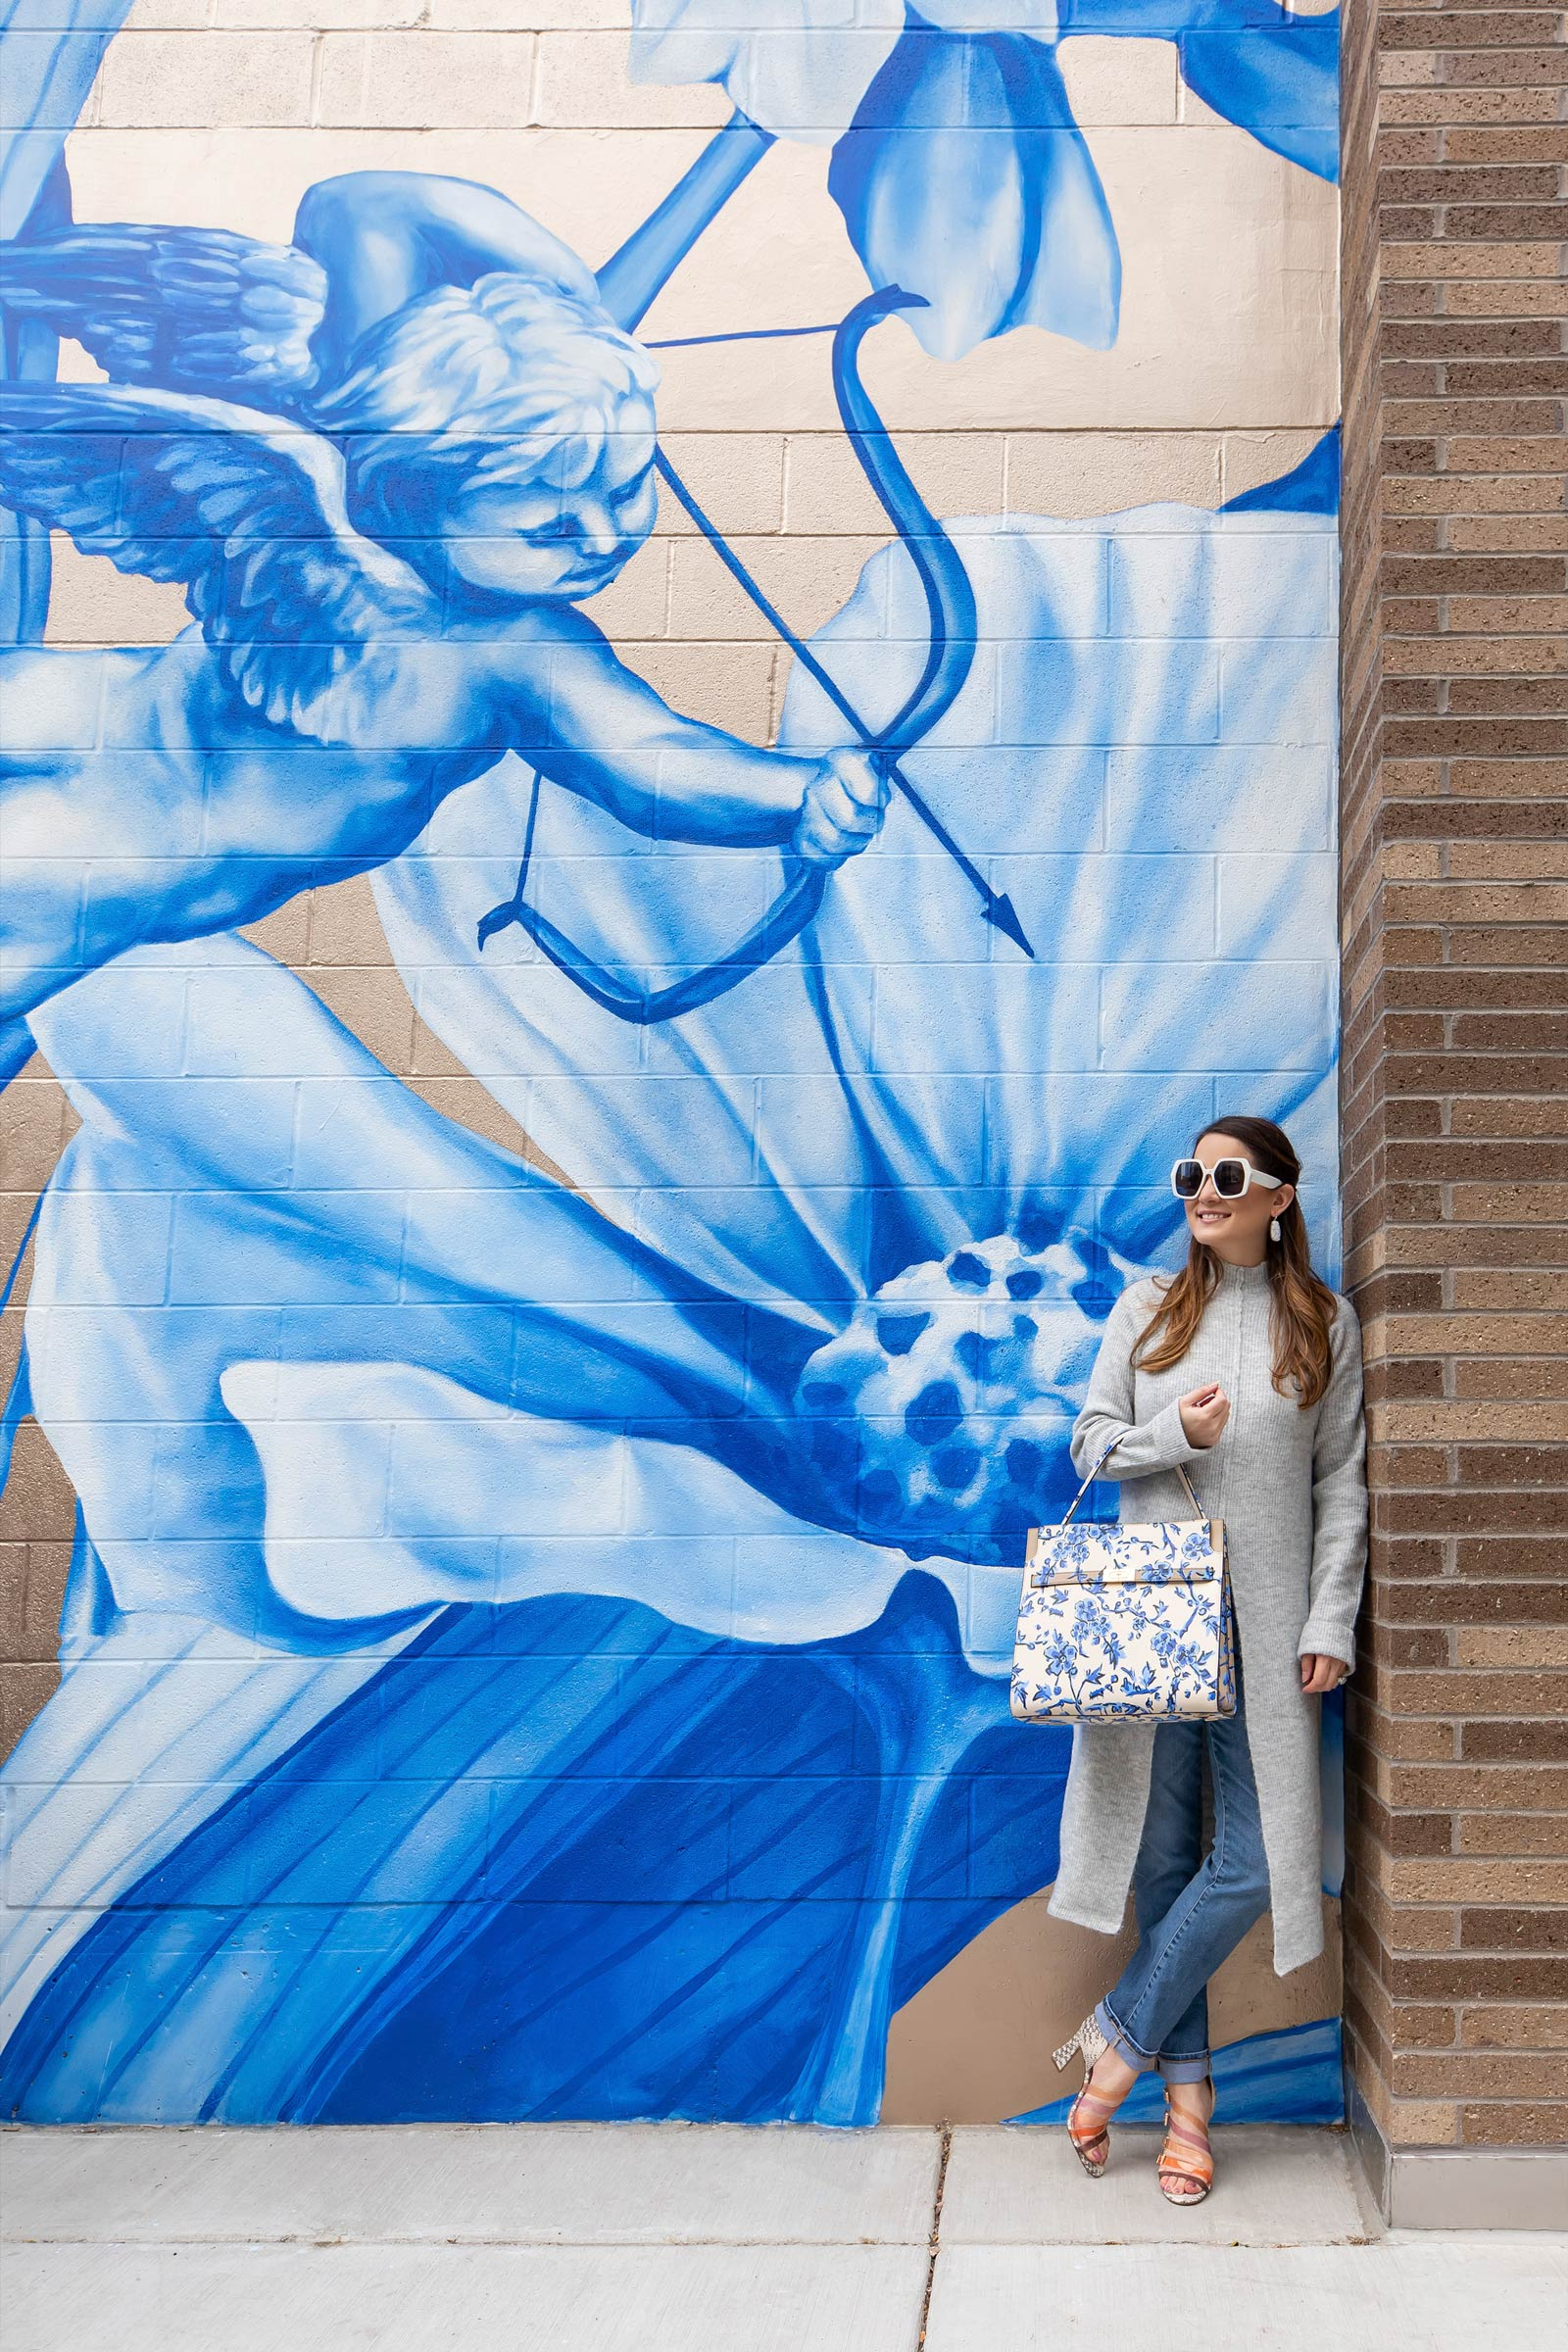 Jennifer Lake Blue Cupid Mural Chicago